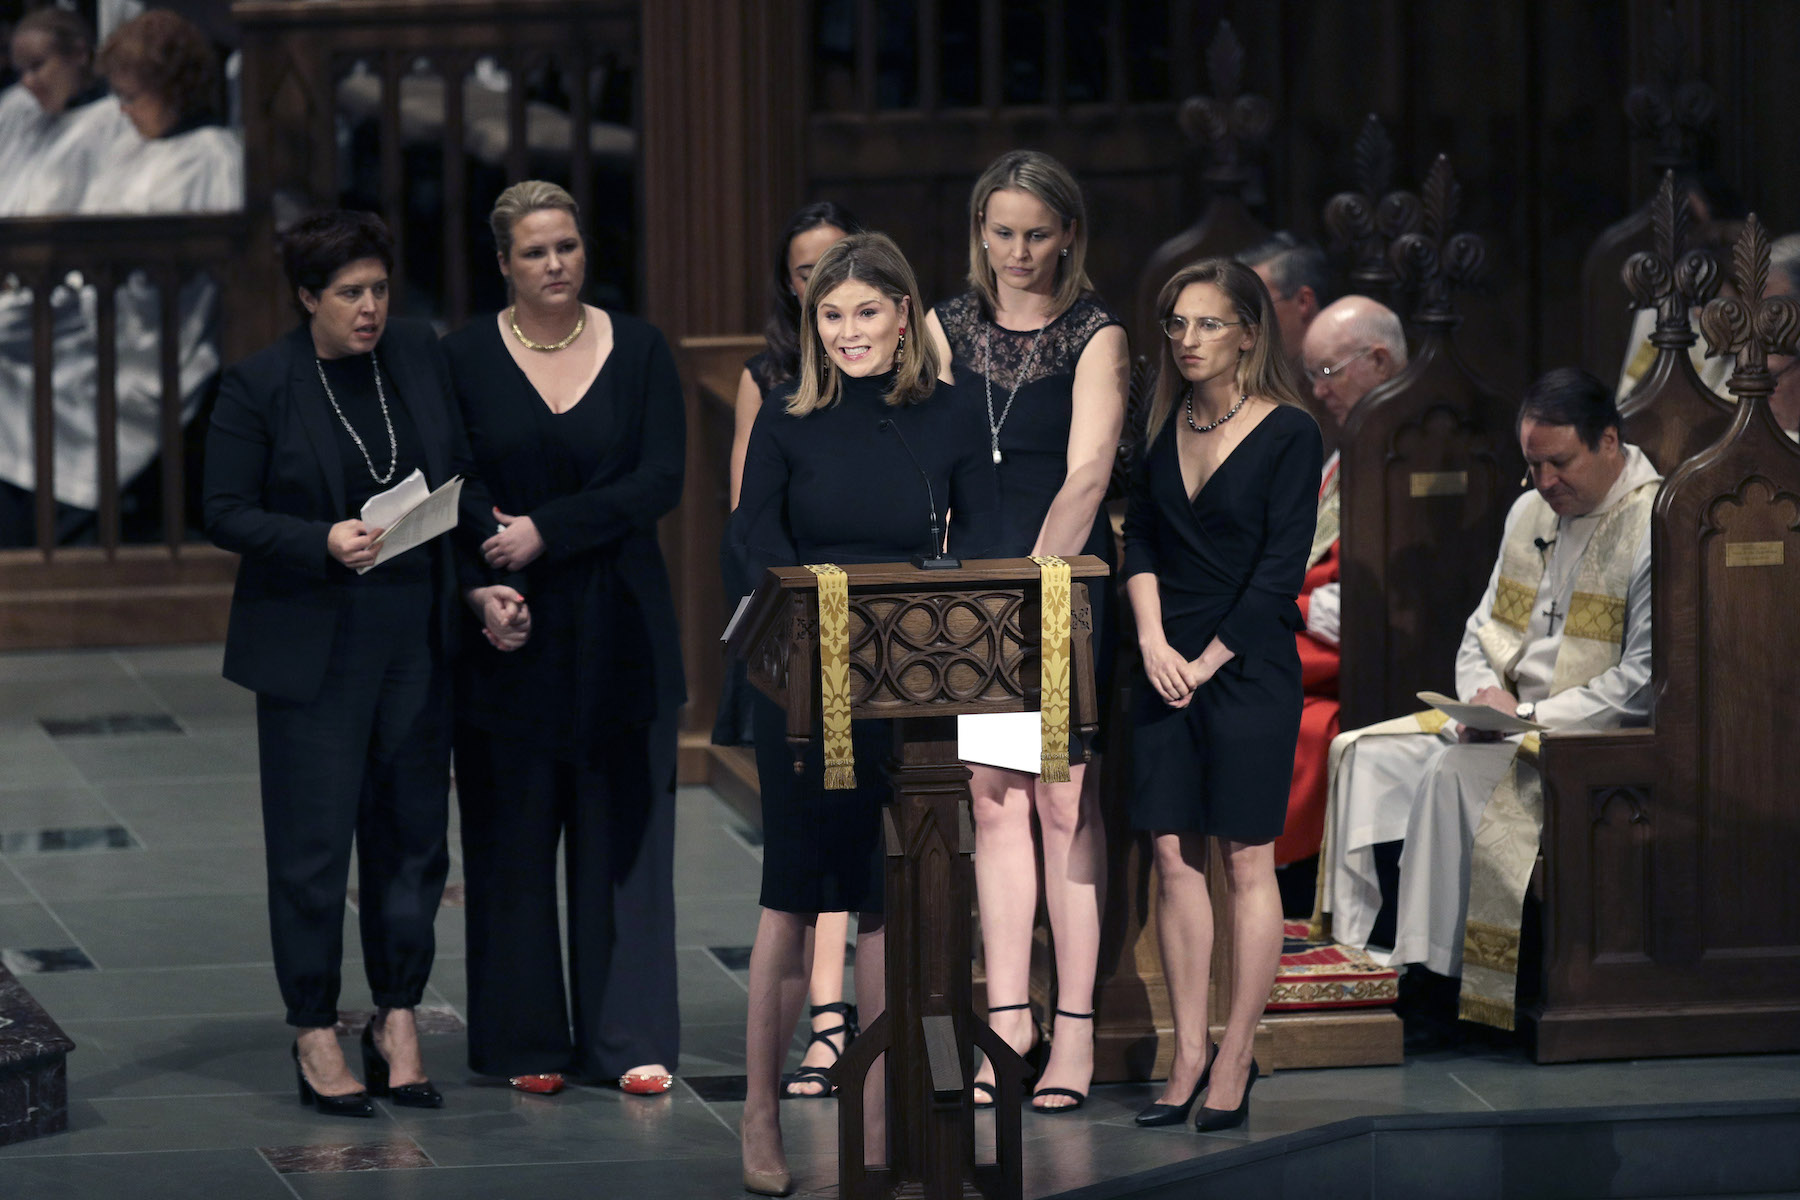 <div class='meta'><div class='origin-logo' data-origin='none'></div><span class='caption-text' data-credit='David J. Phillip-Pool/Getty Images'>Jenna Bush Hager speaks during a funeral service for her grandmother, former first lady Barbara Bush at St. Martin's Episcopal Church April 21, 2018 in Houston, Texas.</span></div>